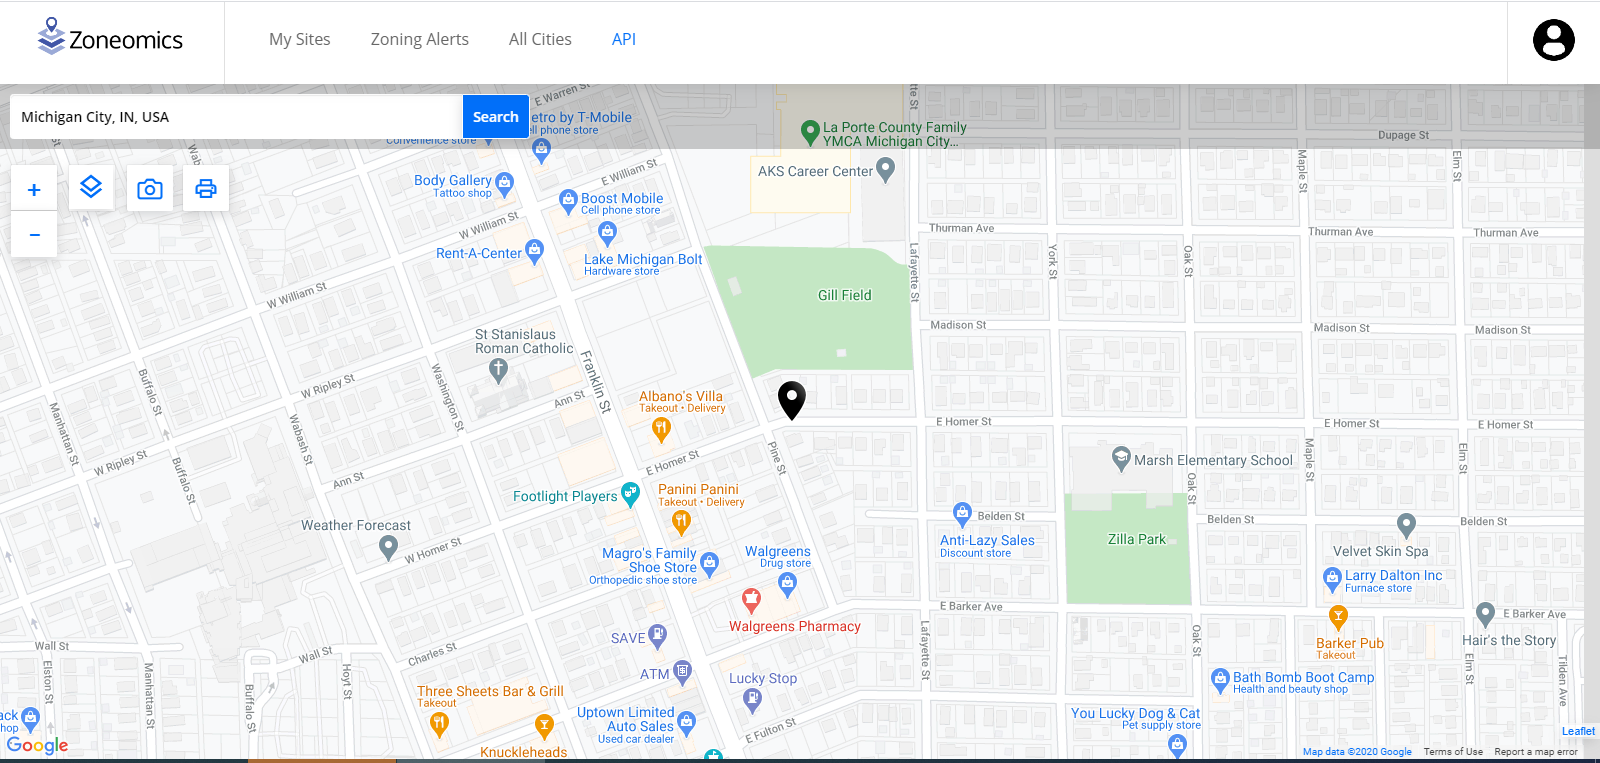 Example of search on zoneomics maps platform